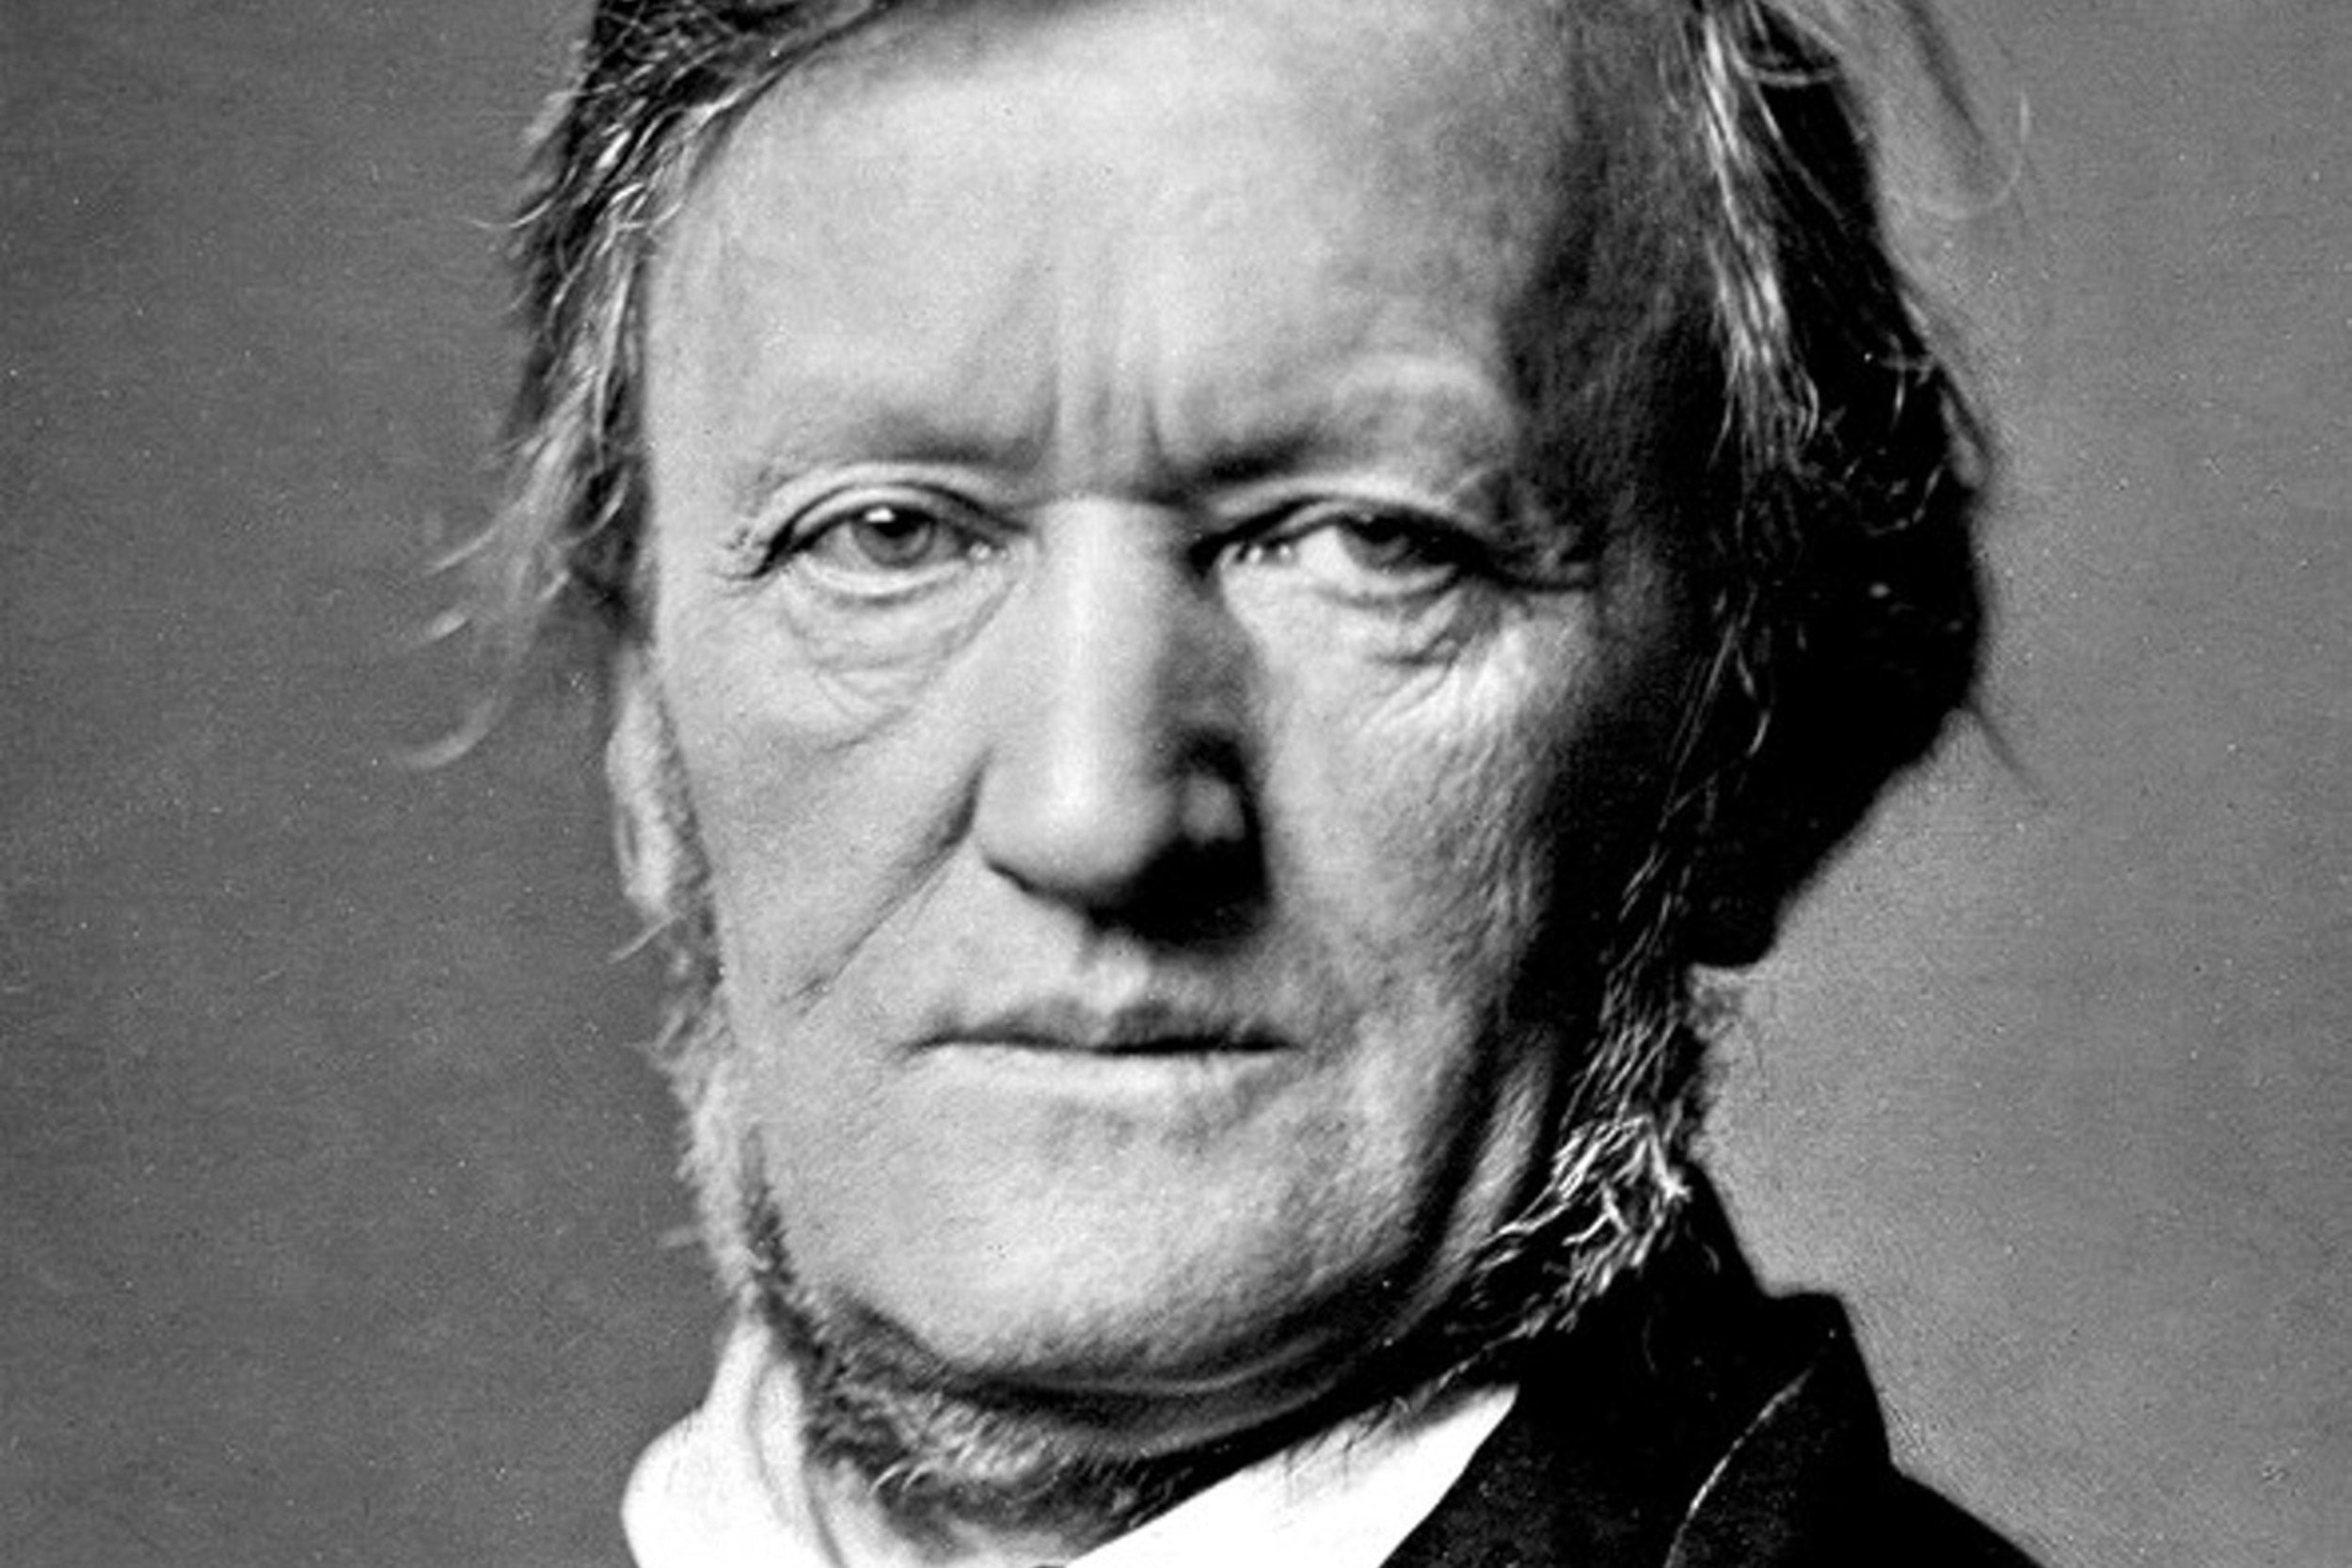 New Yorker music critic Alex Ross '90 is writing a book that examines Richard Wagner's influence, and explores if and how it is possible to separate a controversial artist from his oeuvre.